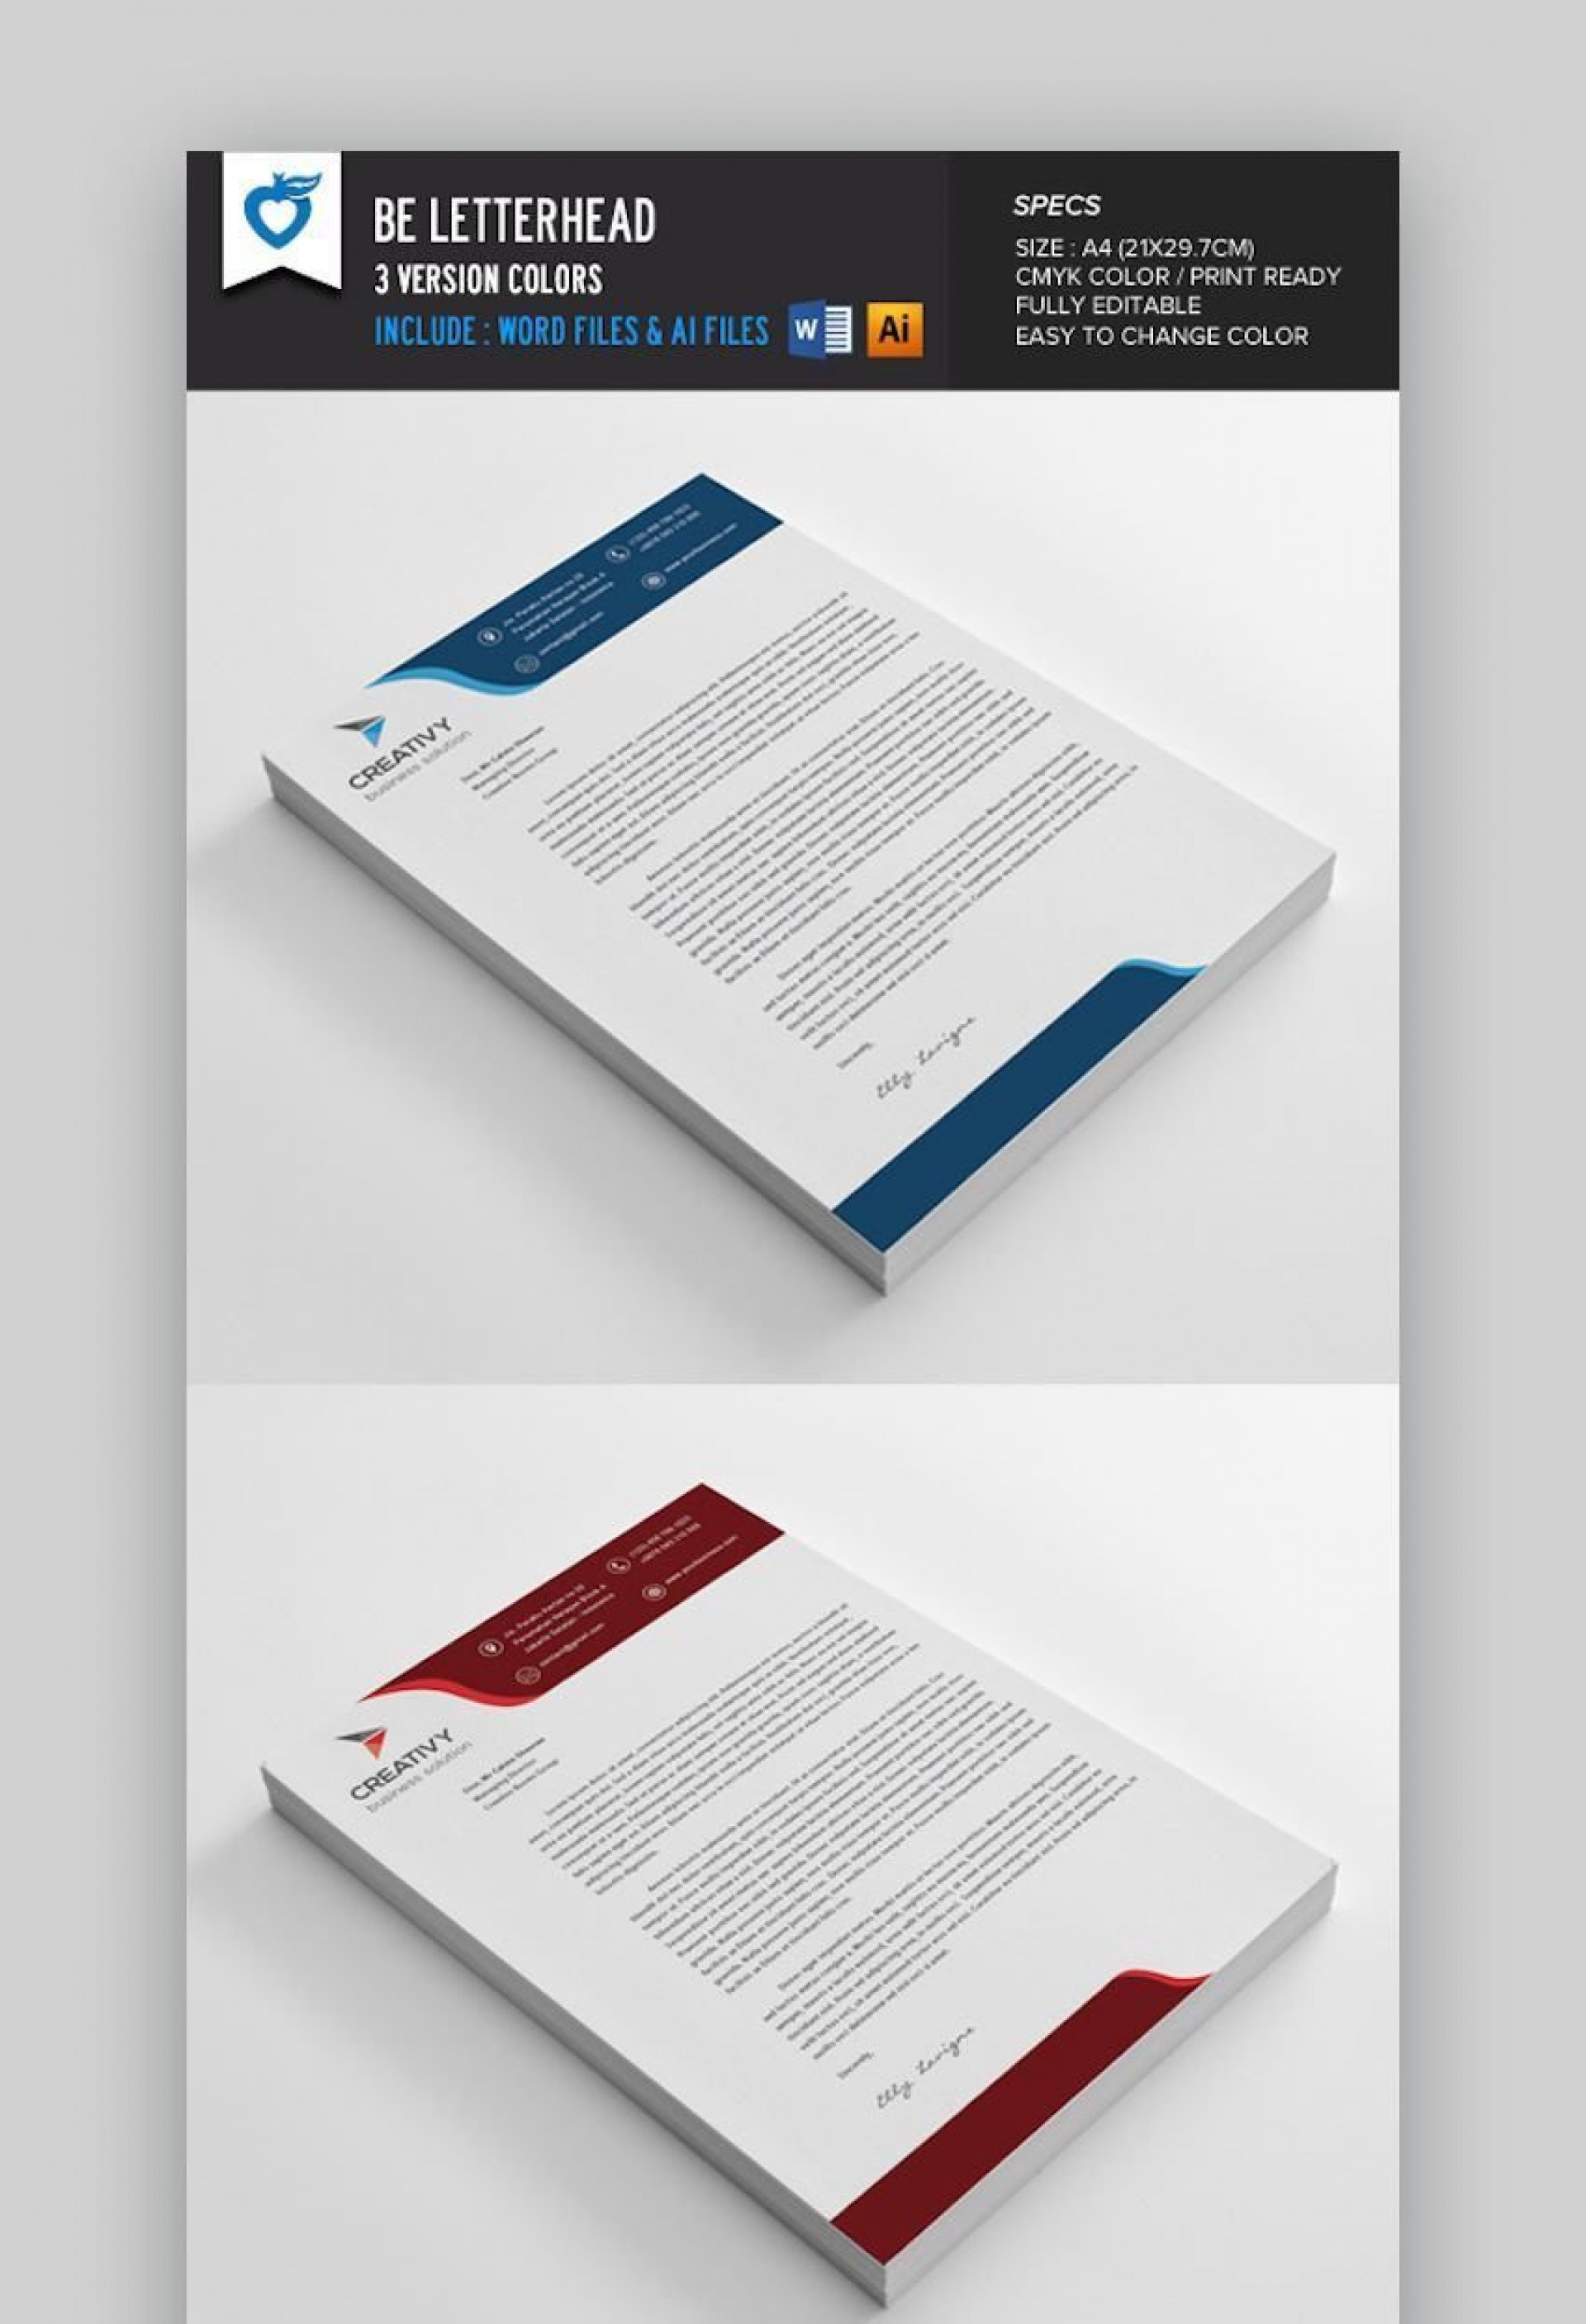 008 Impressive Letterhead Format In M Word Free Download Highest Quality 1920